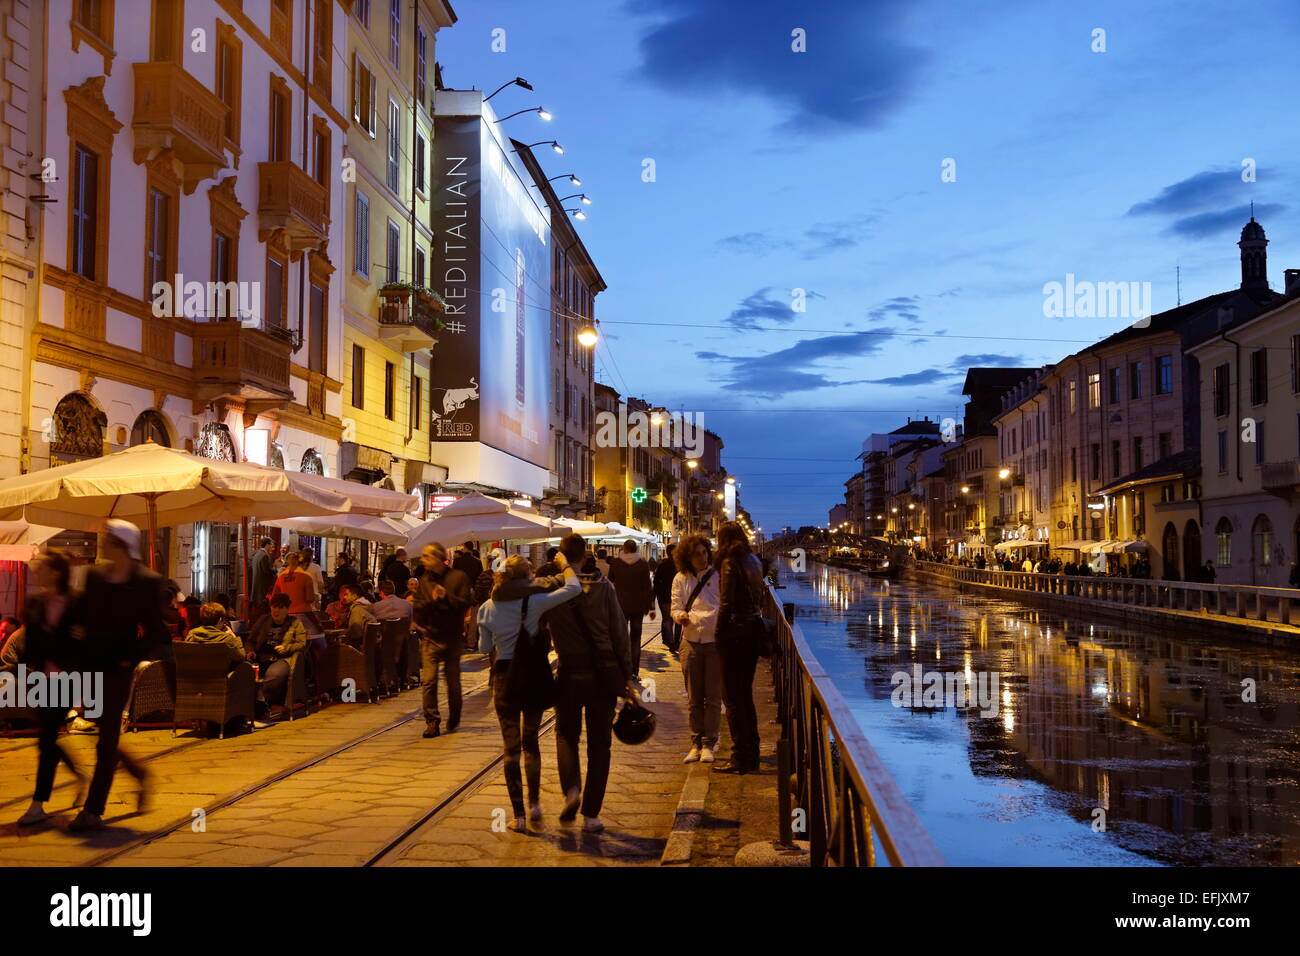 restaurants and bars along a canal navigli quarter milan